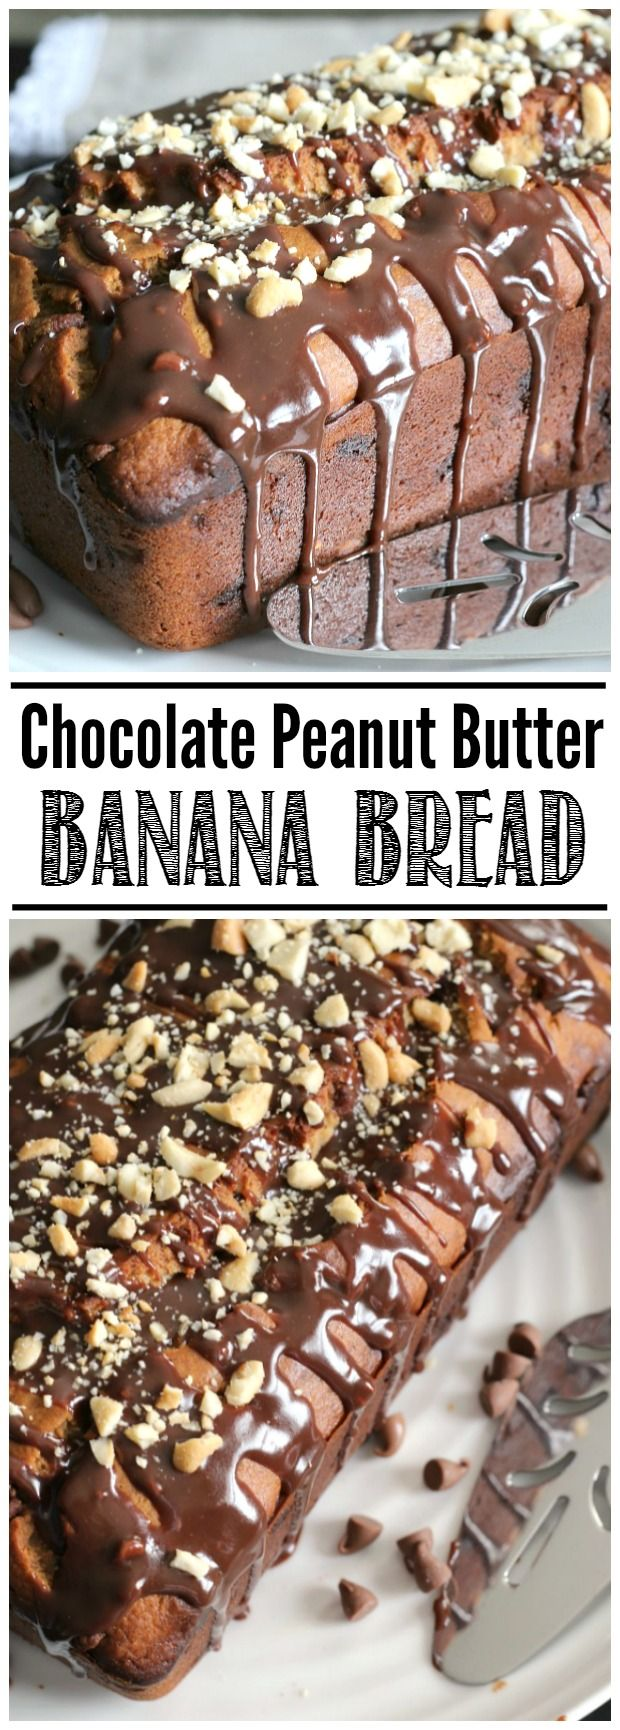 Easy chocolate peanut butter banana b0read with a chocolate glaze. My favorite banana bread recipe!